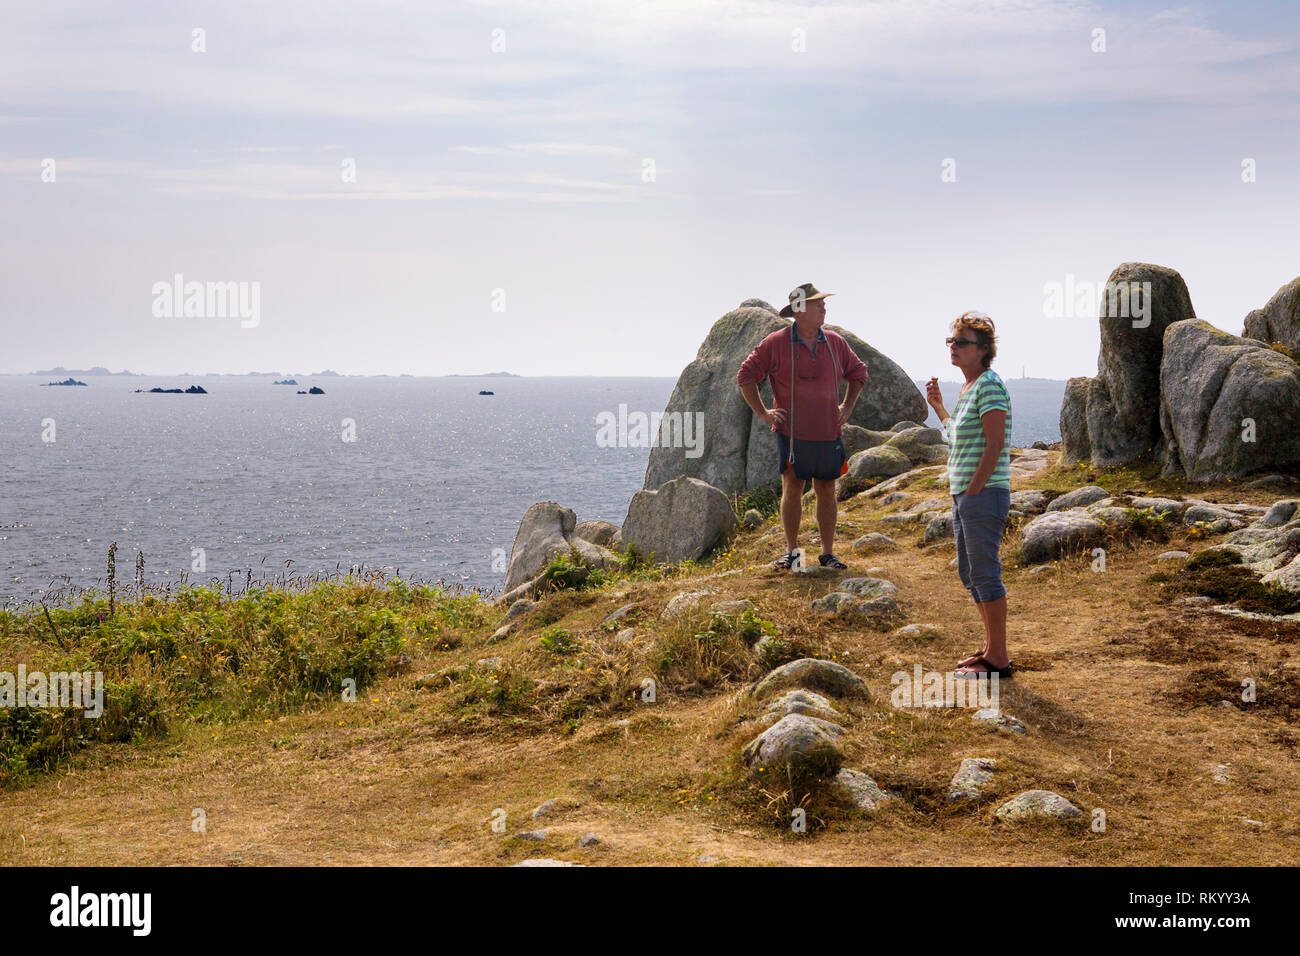 Middle-aged hiking couple enjoy the view from Carnew Point, St. Agnes, Isles of Scilly, UK - Stock Image